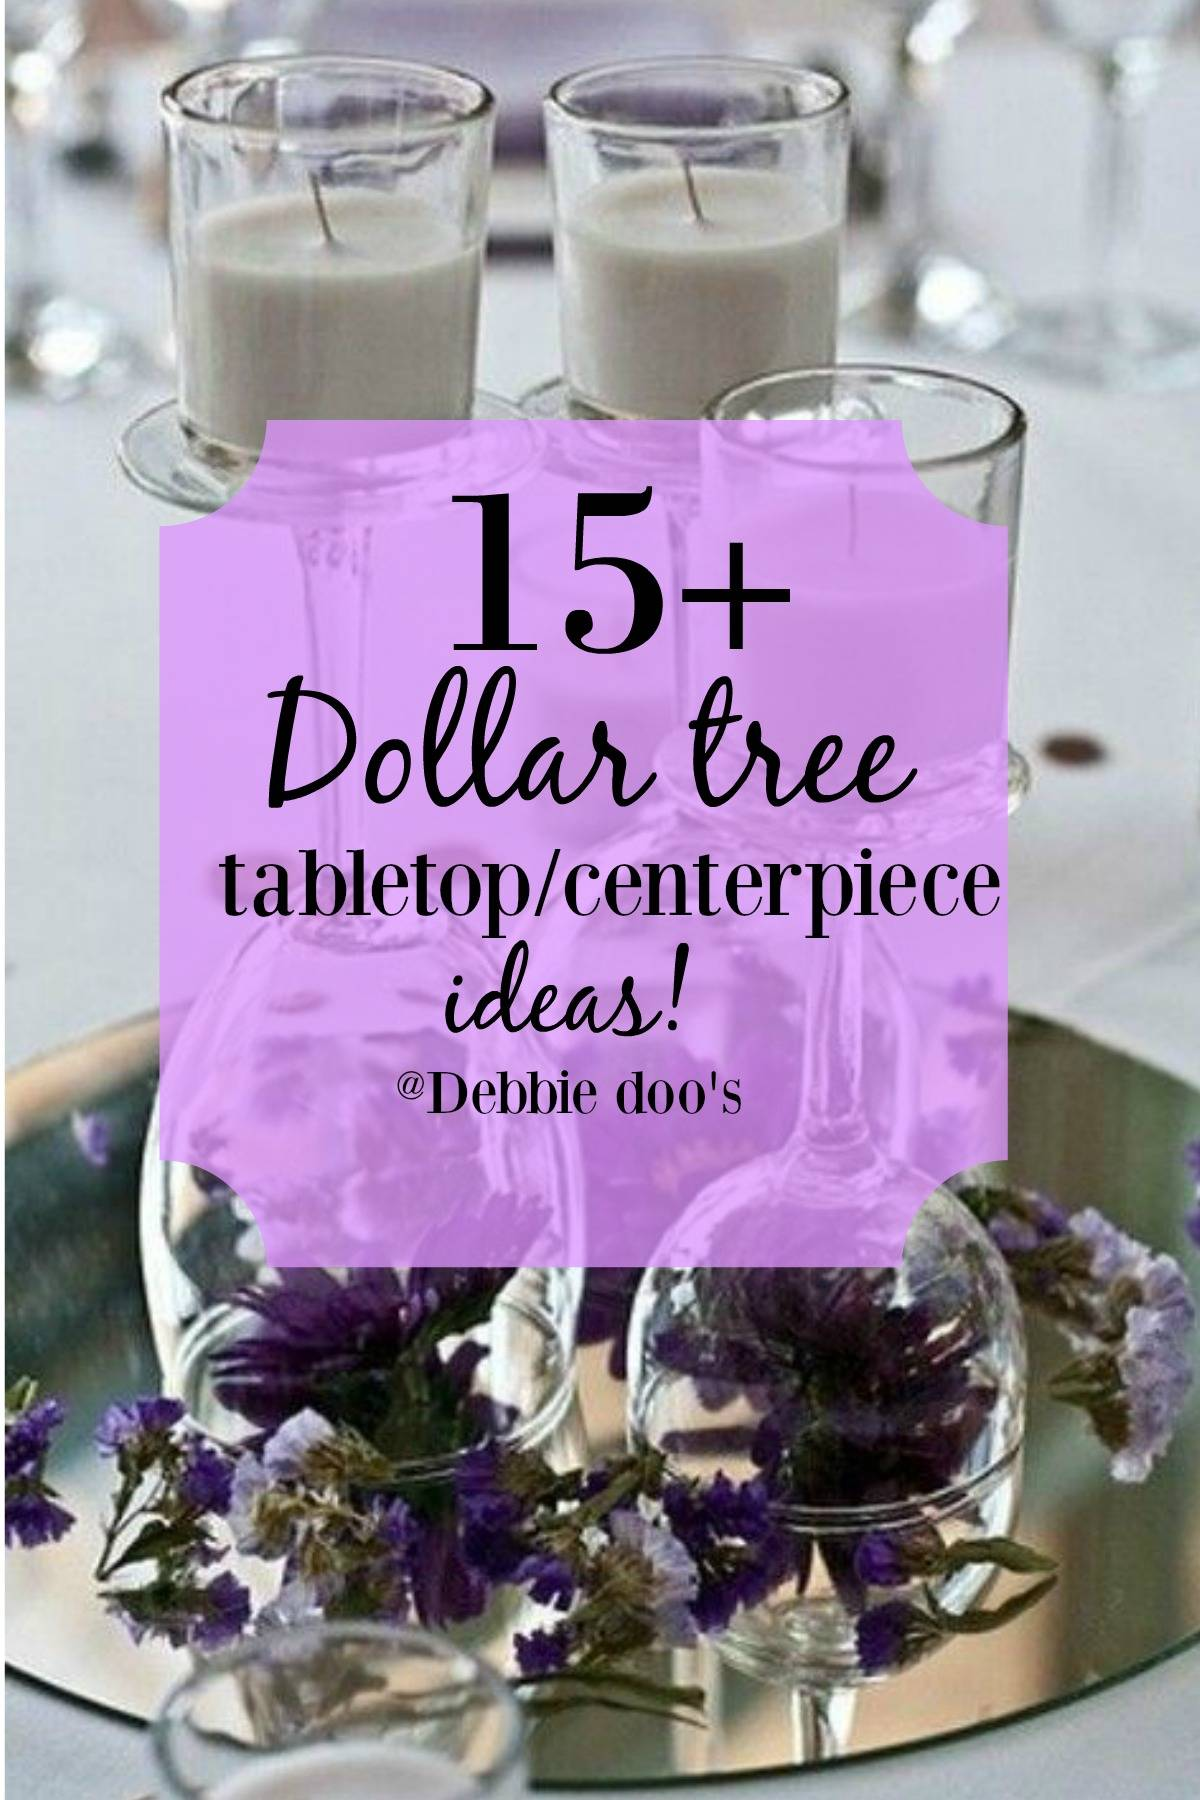 15 Dollar Tree Tabletop And Centerpiece Ideas For All Occasions Seasons